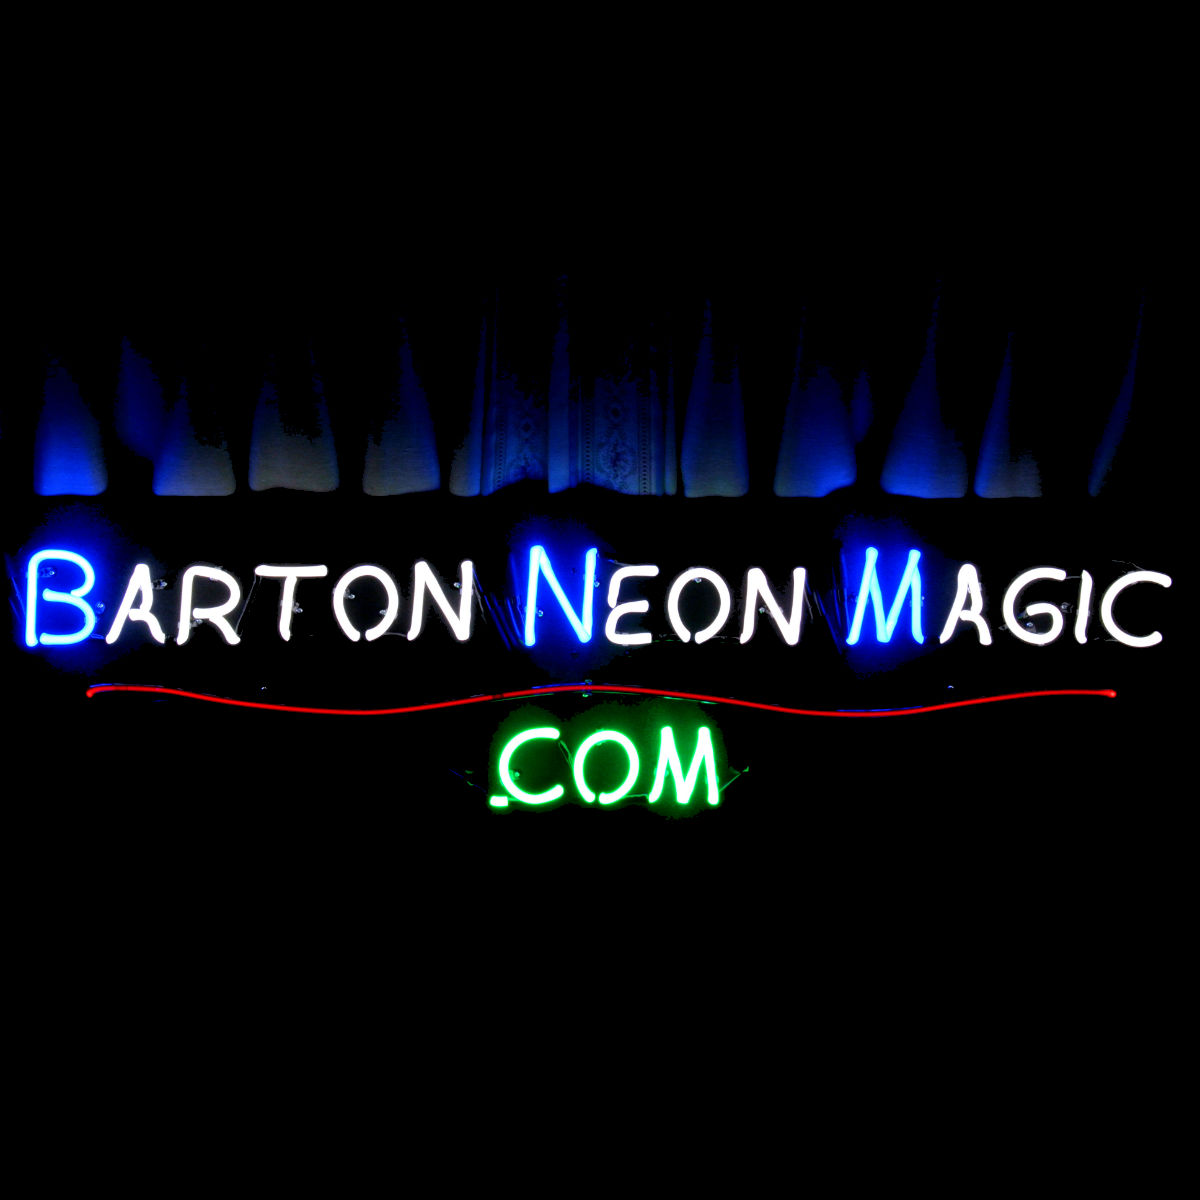 Fine Designer Neon Light Fixtures by John Barton - BartonNeonMagic.com